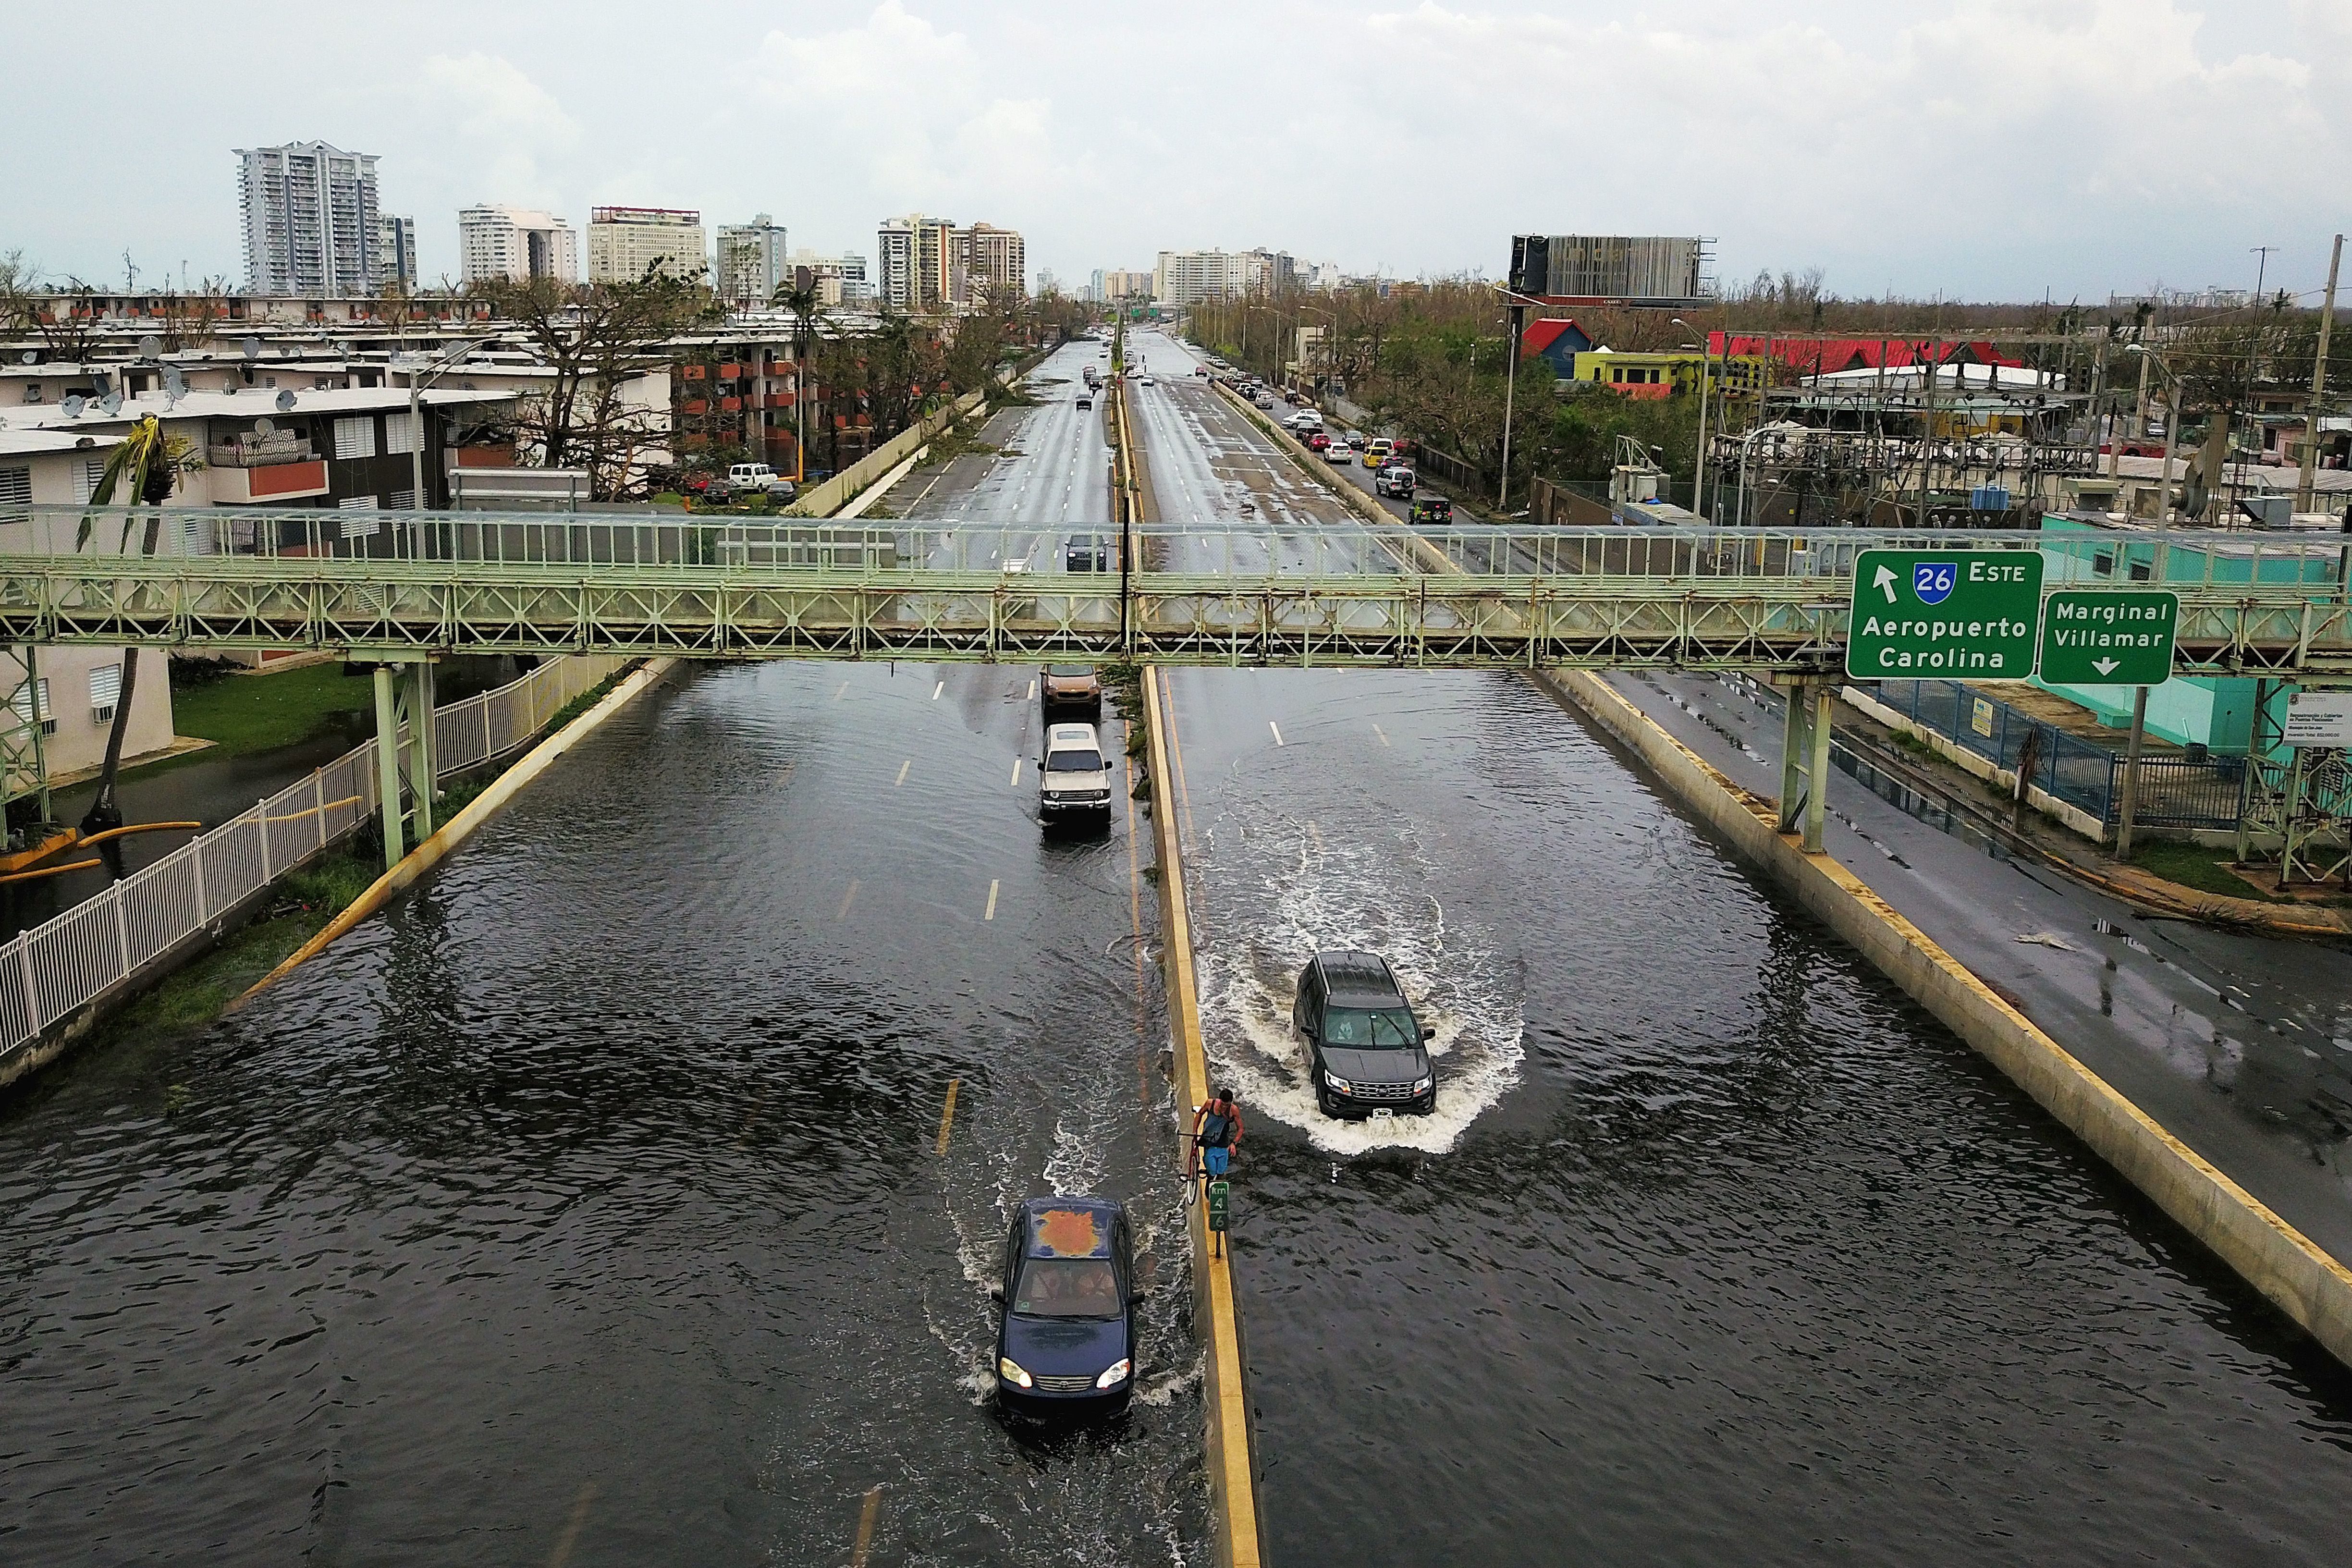 Cars drive through a flooded road in the aftermath of Hurricane Maria in San Juan on Sept. 21,